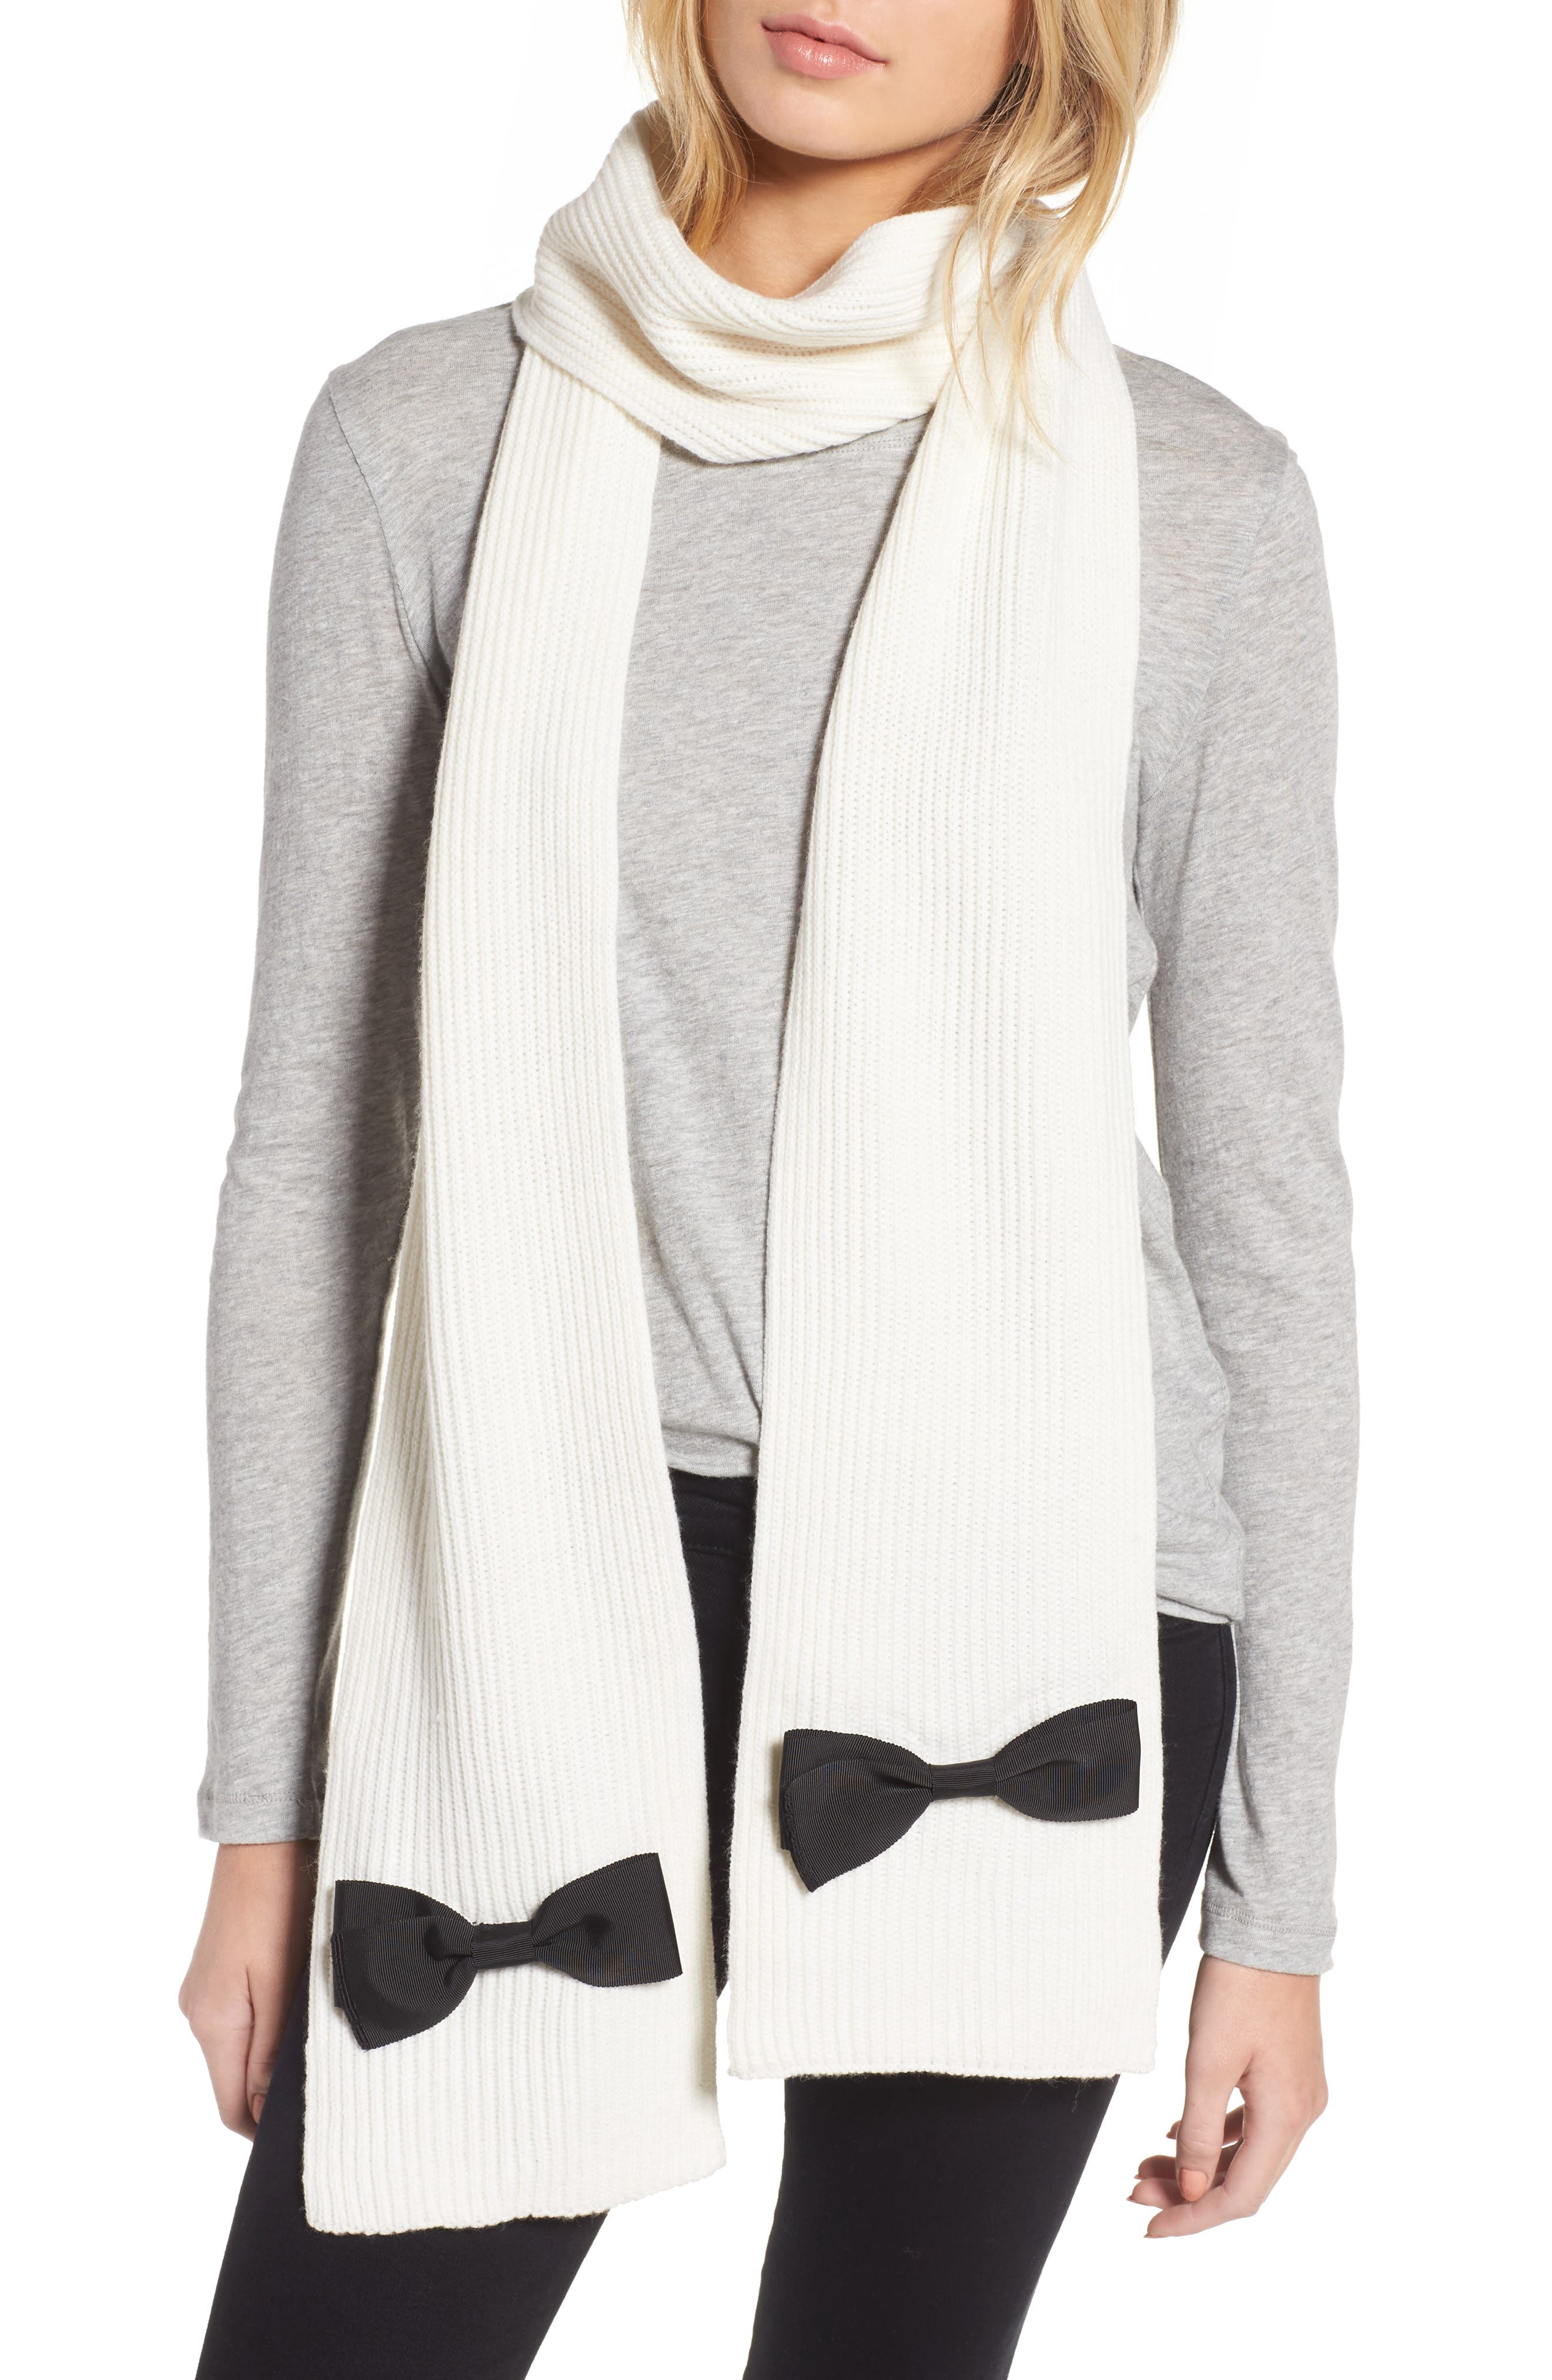 grosgrain bow muffler scarf,                             Main thumbnail 1, color,                             Cream